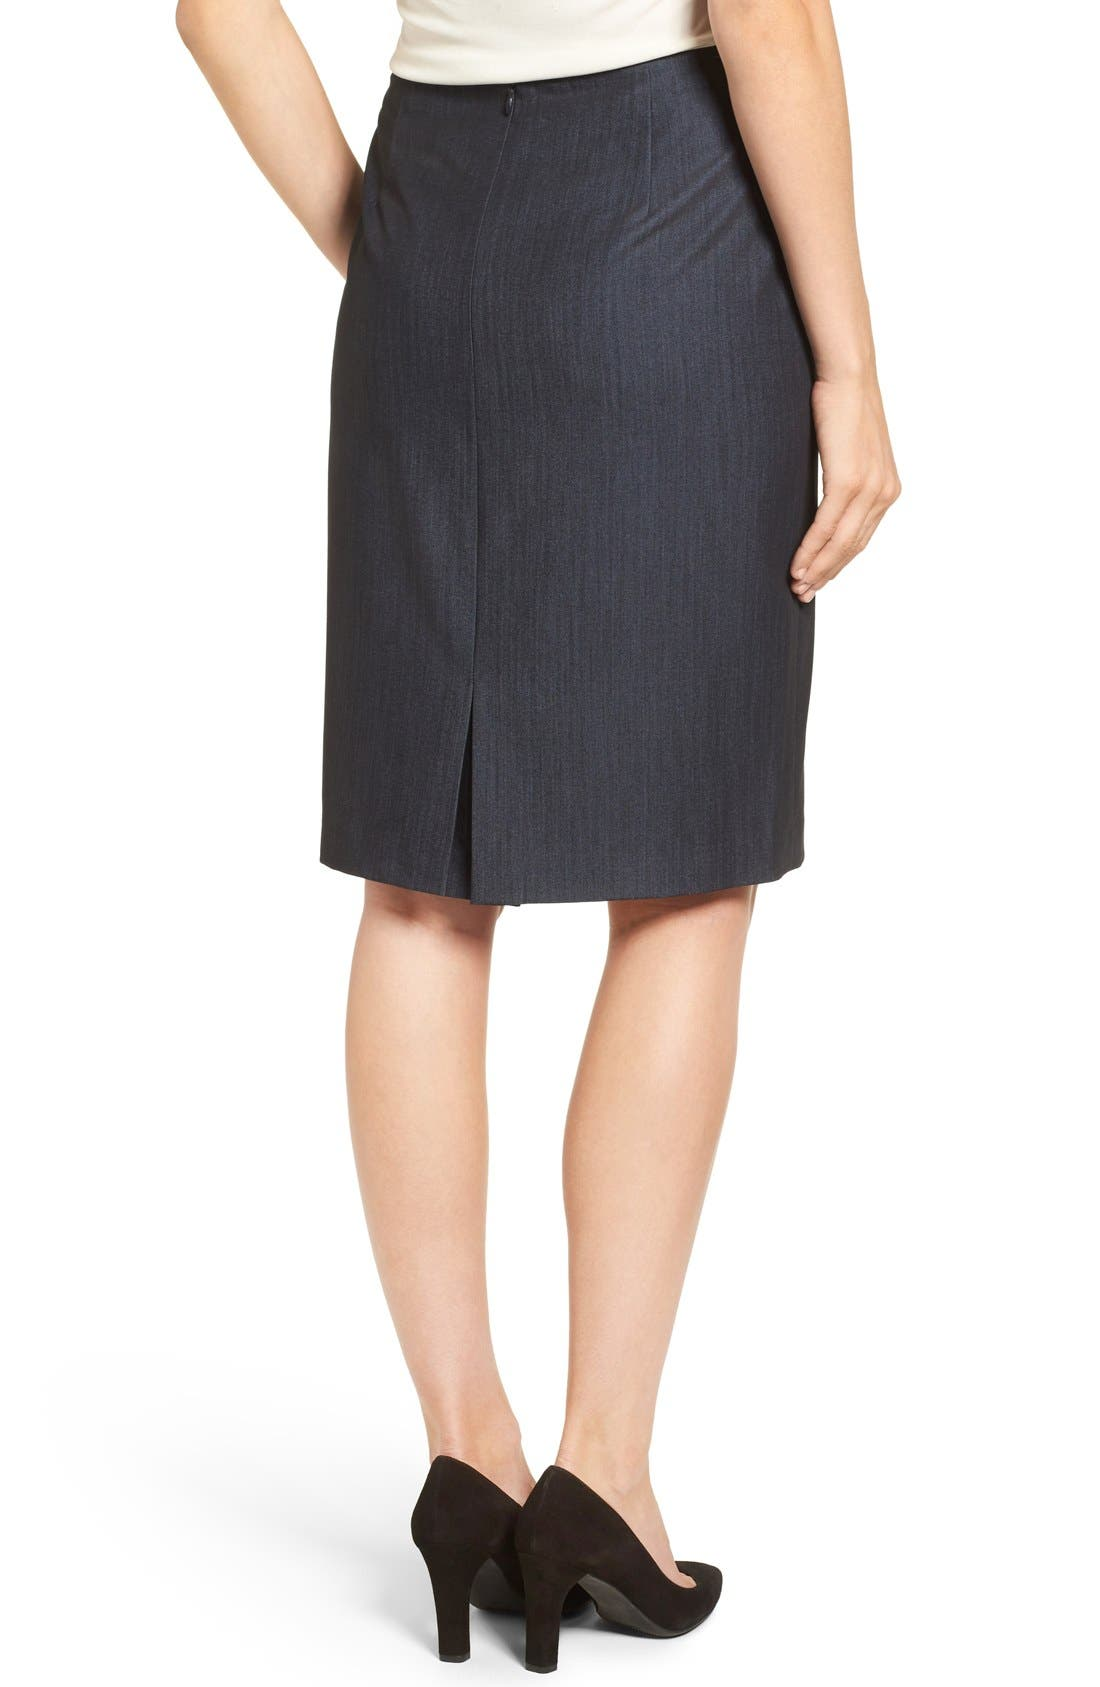 ANNE KLEIN,                             Stretch Woven Suit Skirt,                             Alternate thumbnail 2, color,                             INDIGO TWILL